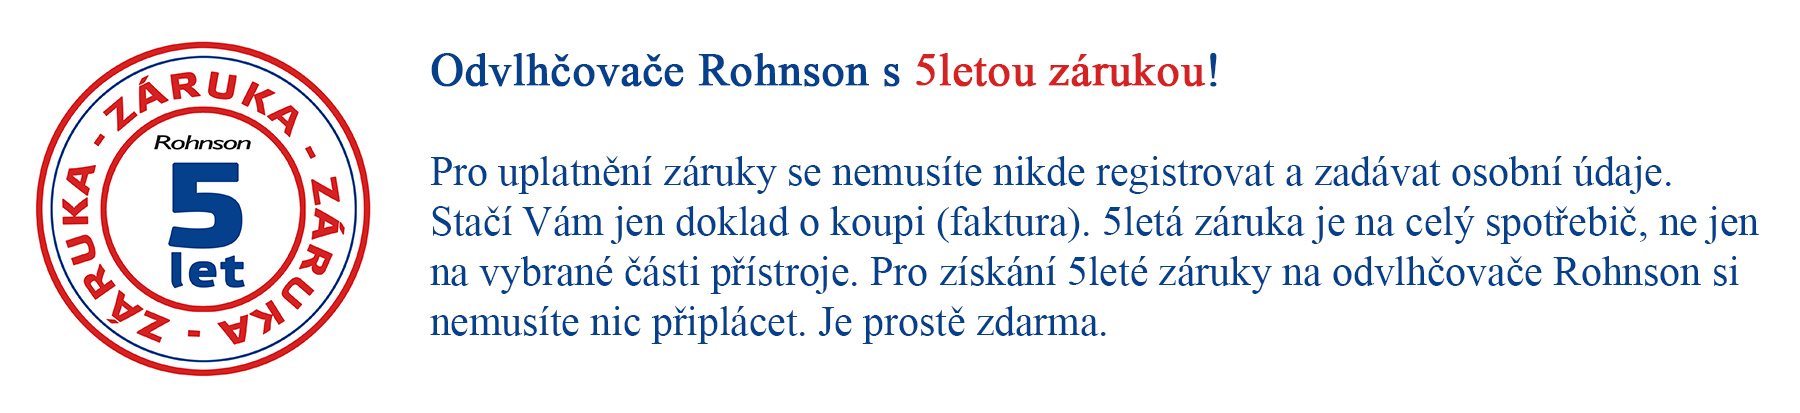 Rohnson 5 let zaruka